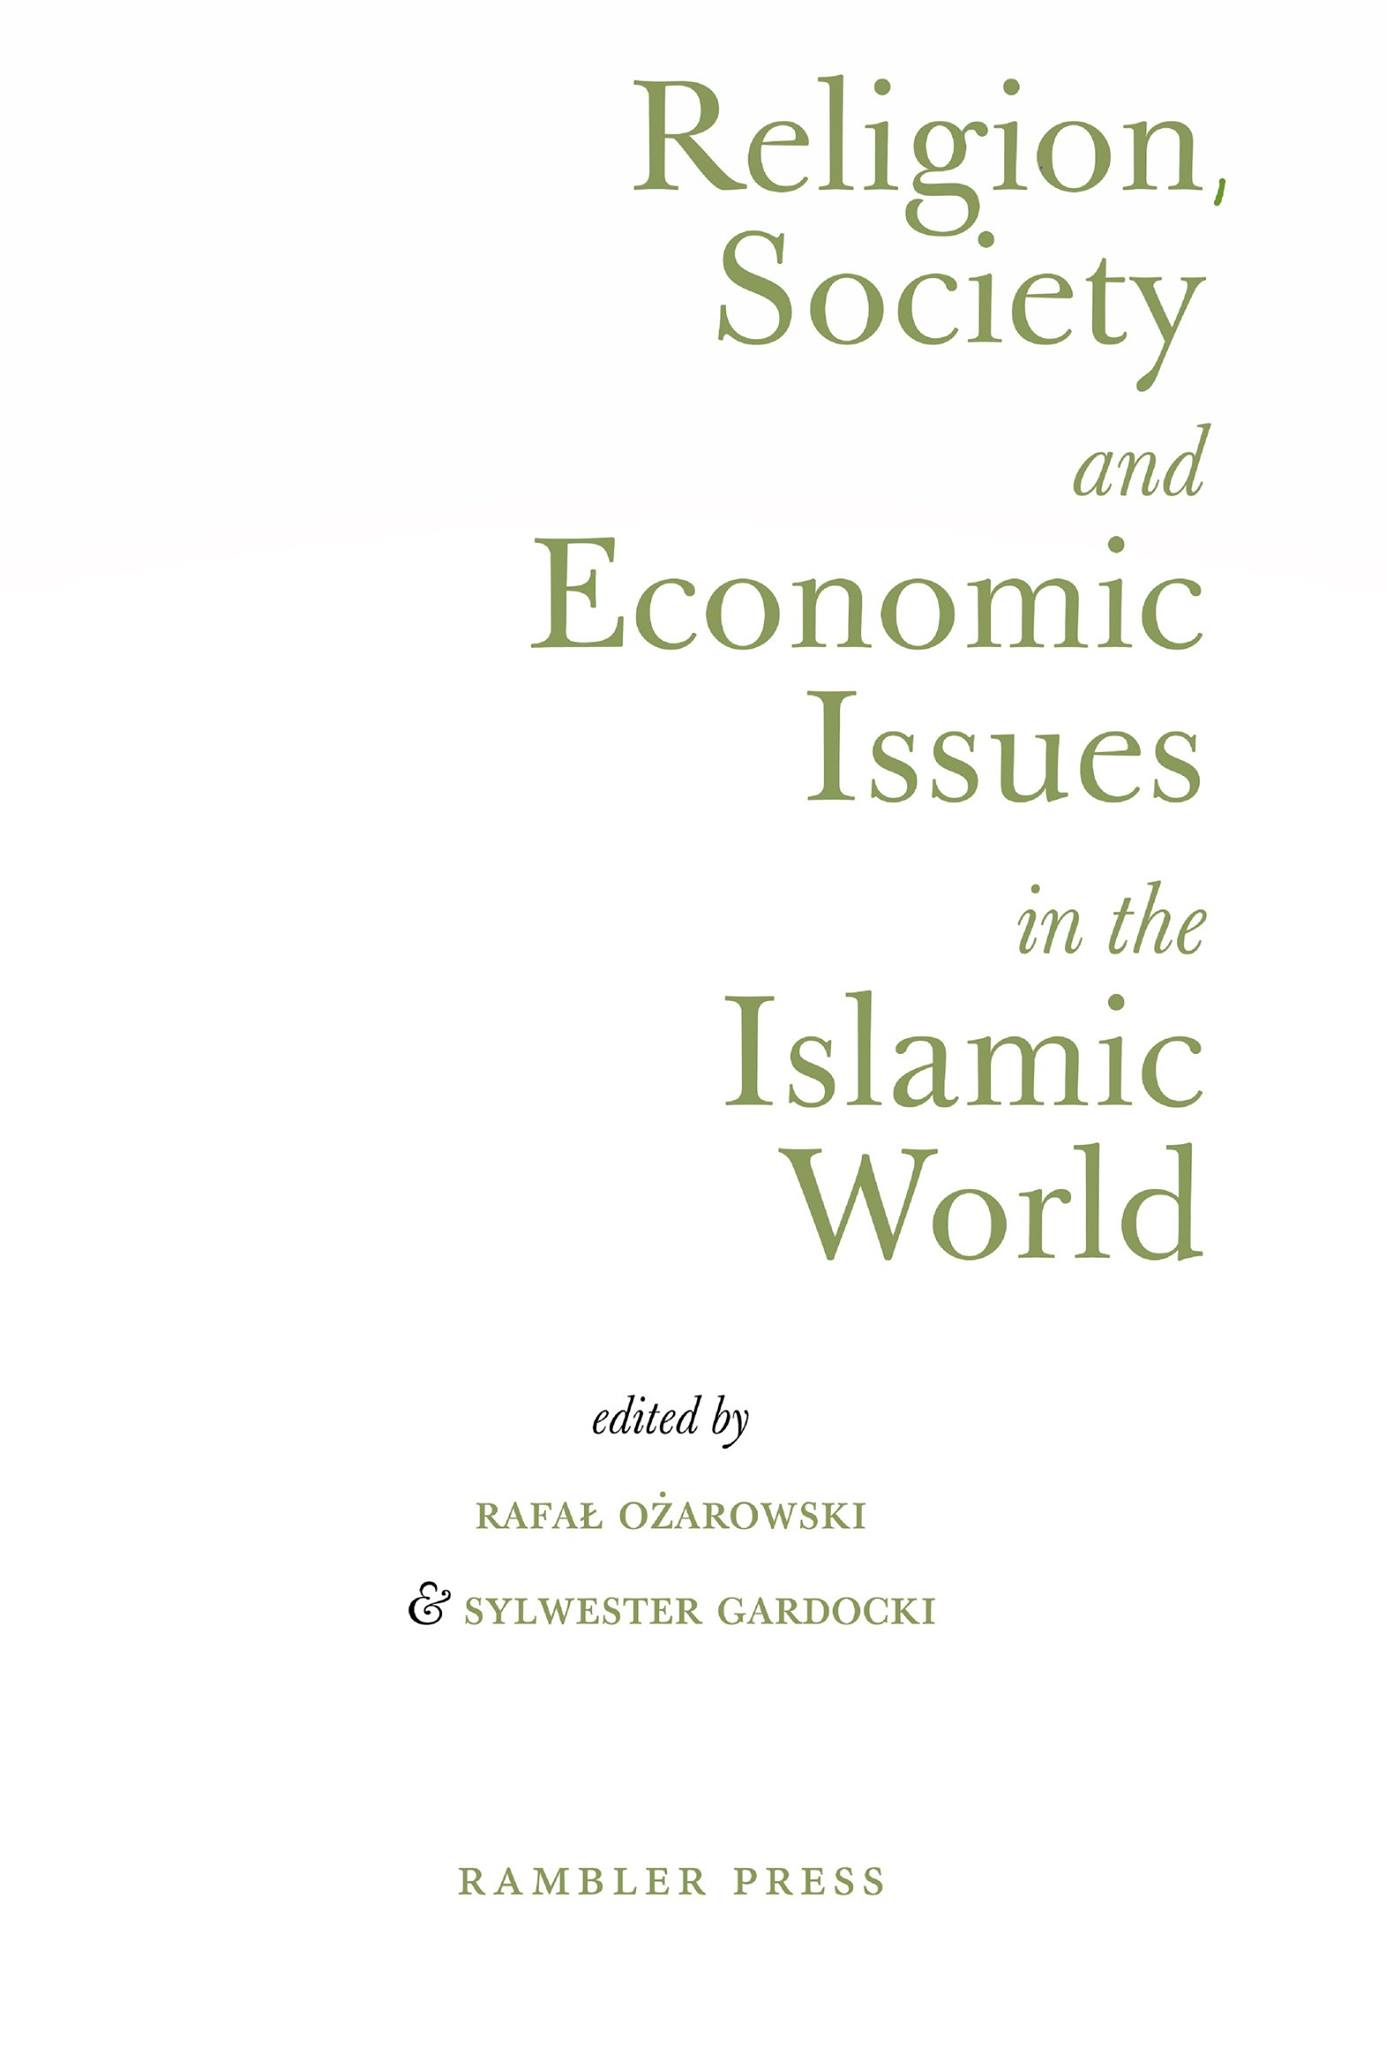 Religion, Society And Economic Issues In The Islamic World